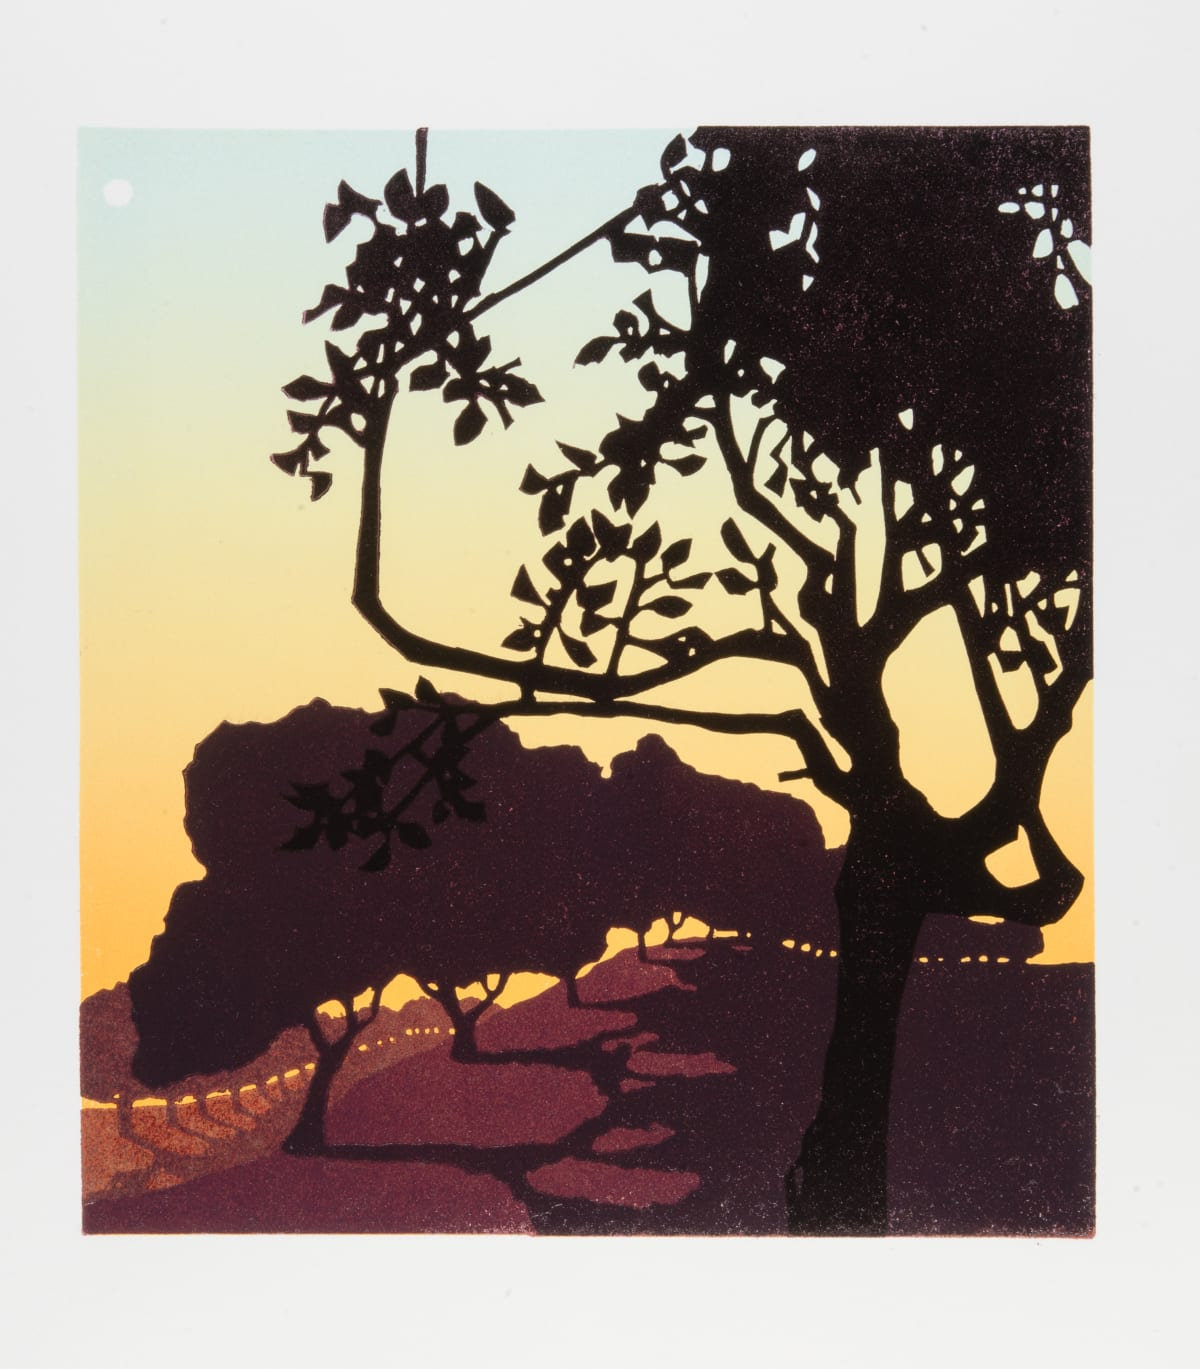 Laura Boswell Dawn Moon, 2018 Linocut 22 x 24 x 3 cm 8 5/8 x 9 1/2 x 1 1/8 in Edition 7 of 10